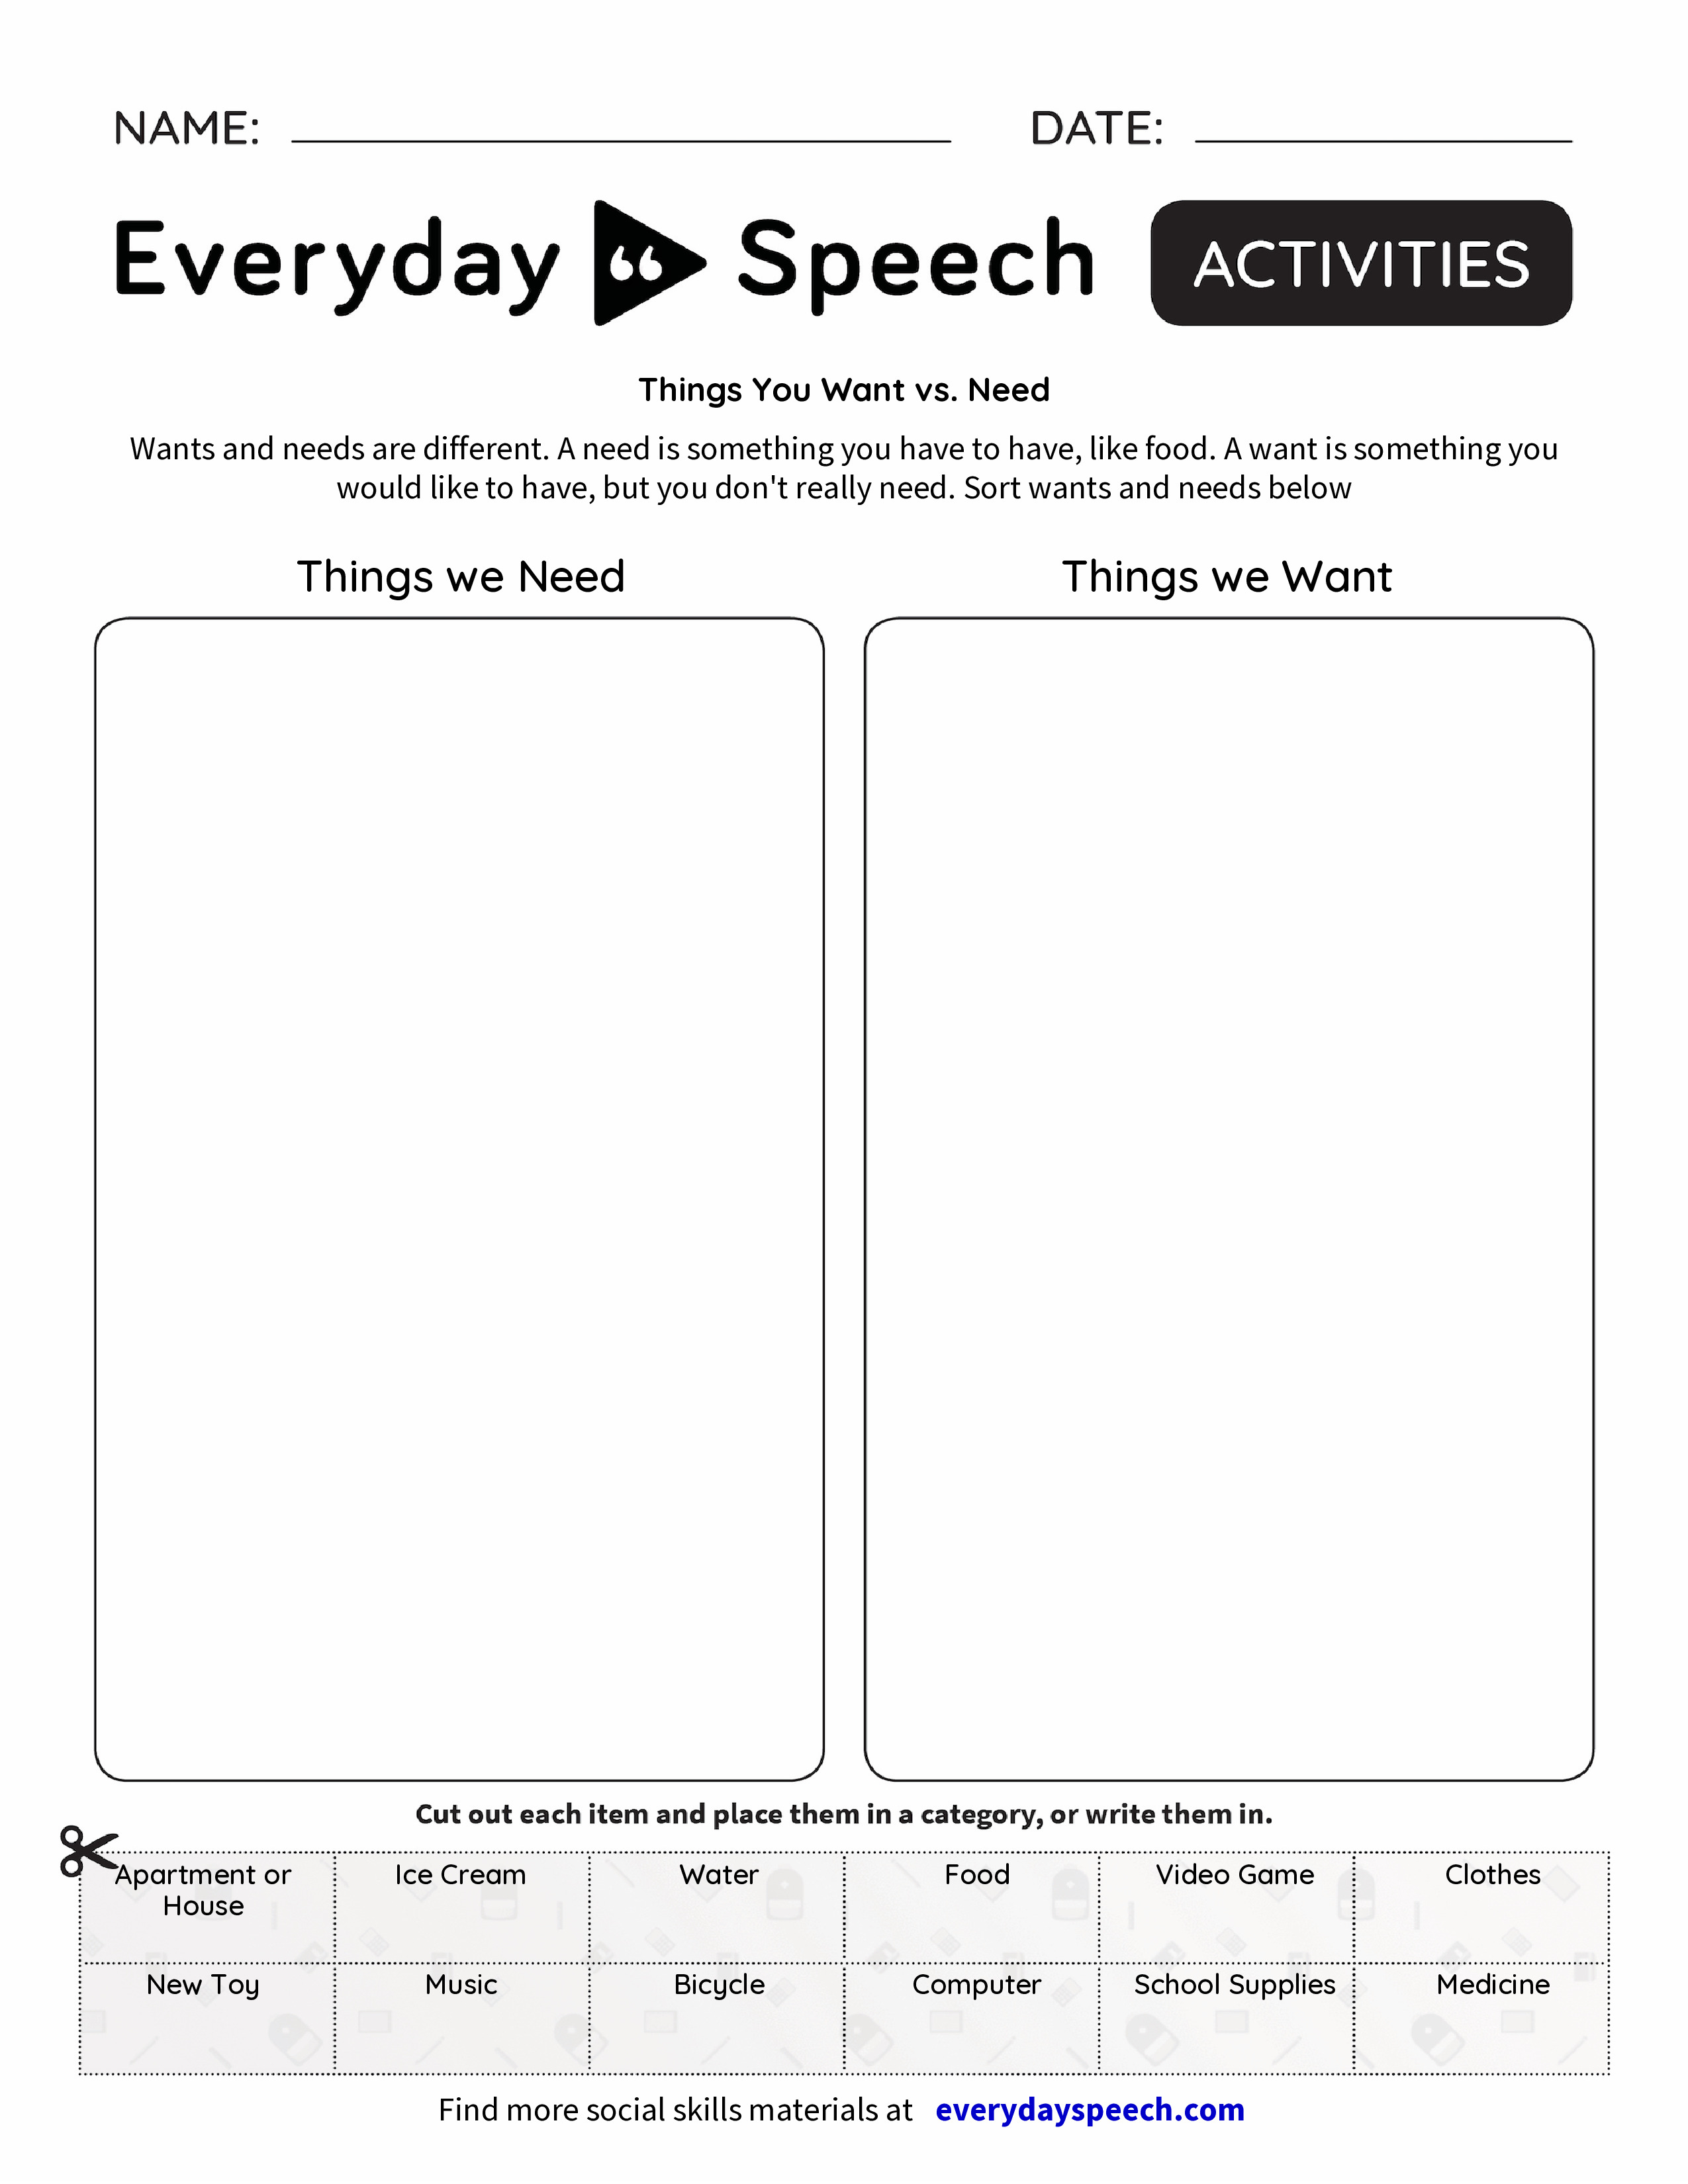 Things You Want Vs Need Everyday Speech Everyday Speech